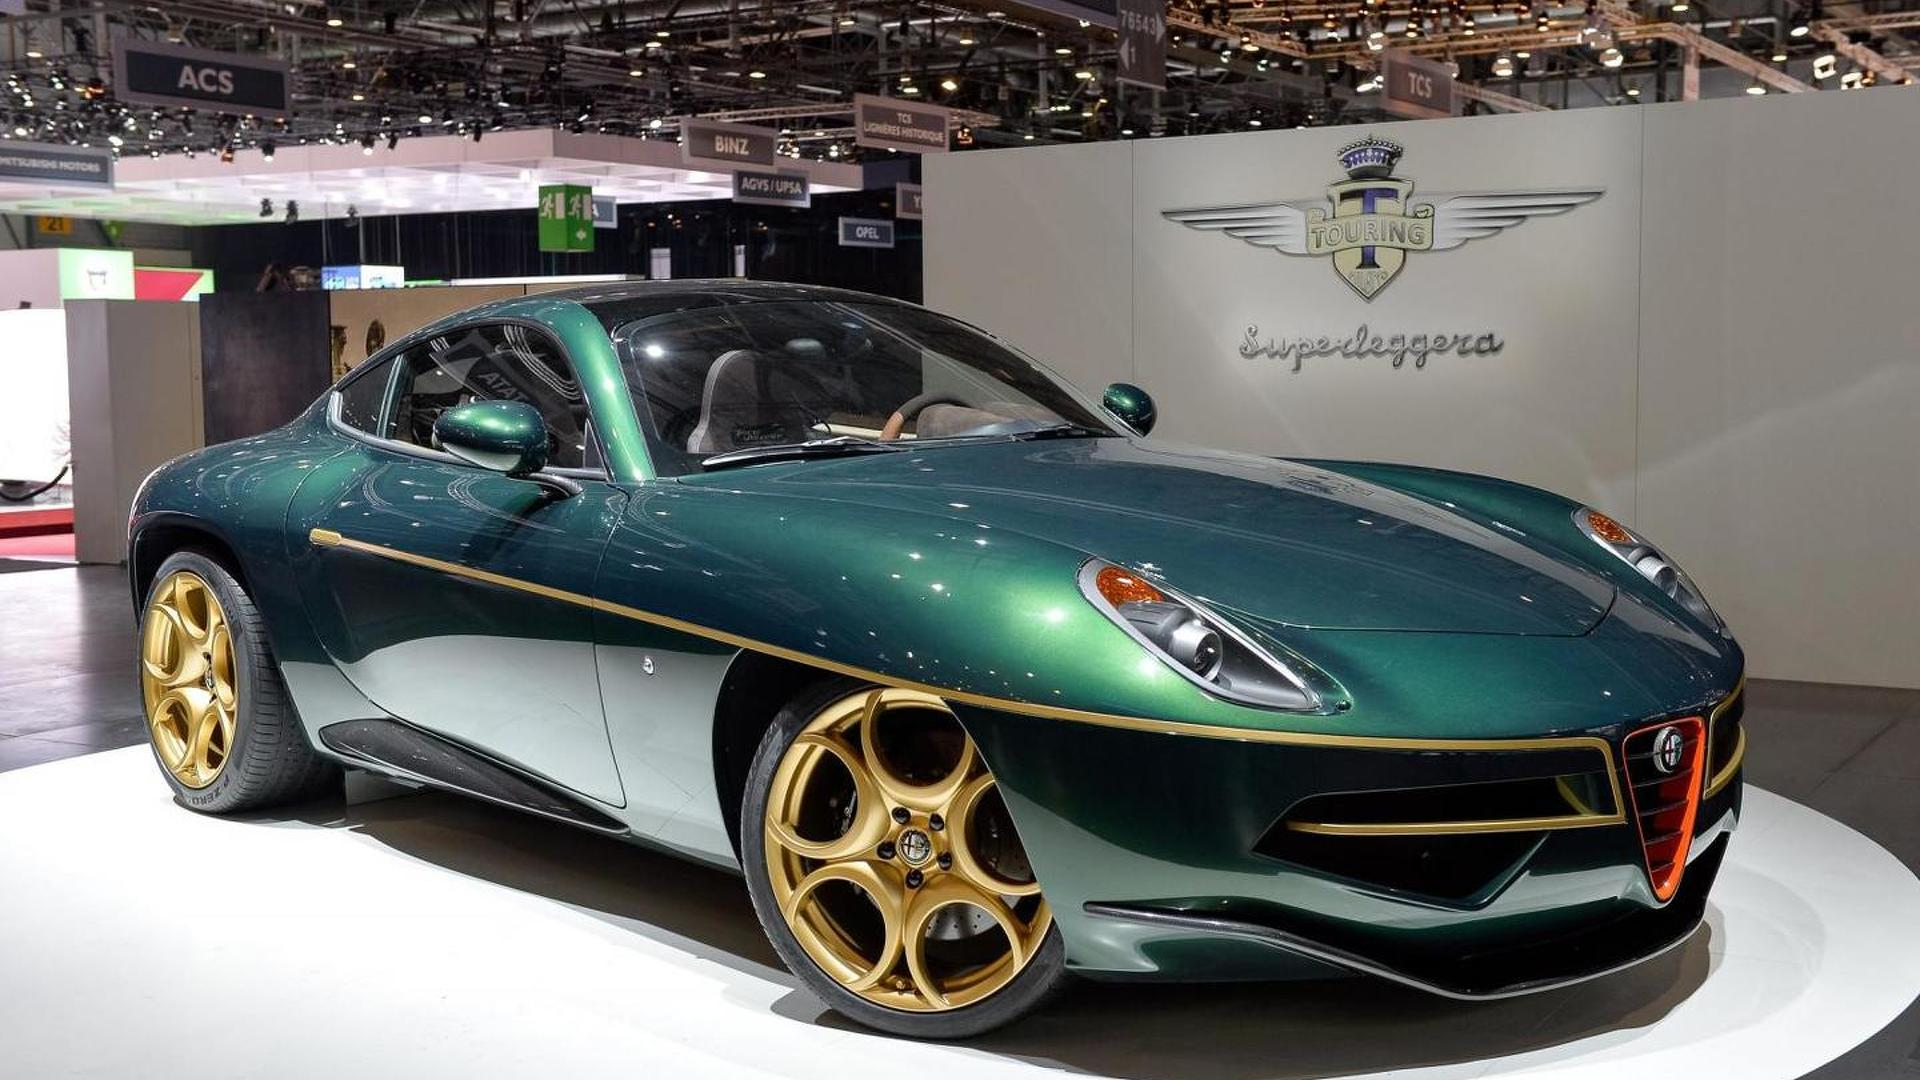 Touring Superleggera Delivering Alfa Romeo Disco Volante In Geneva Video